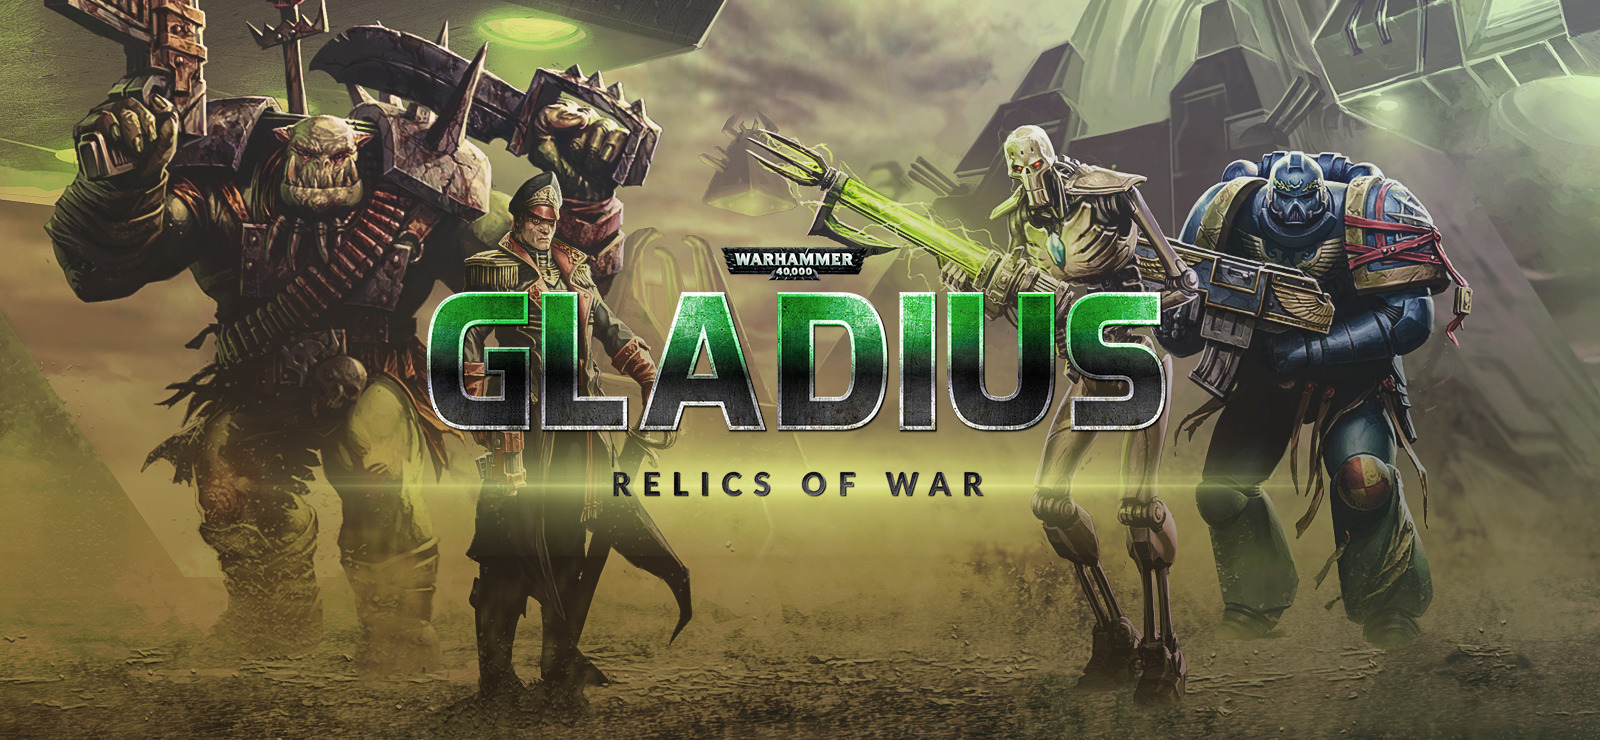 Warhammer 40,000: Gladius - Relics of War Deluxe Edition +